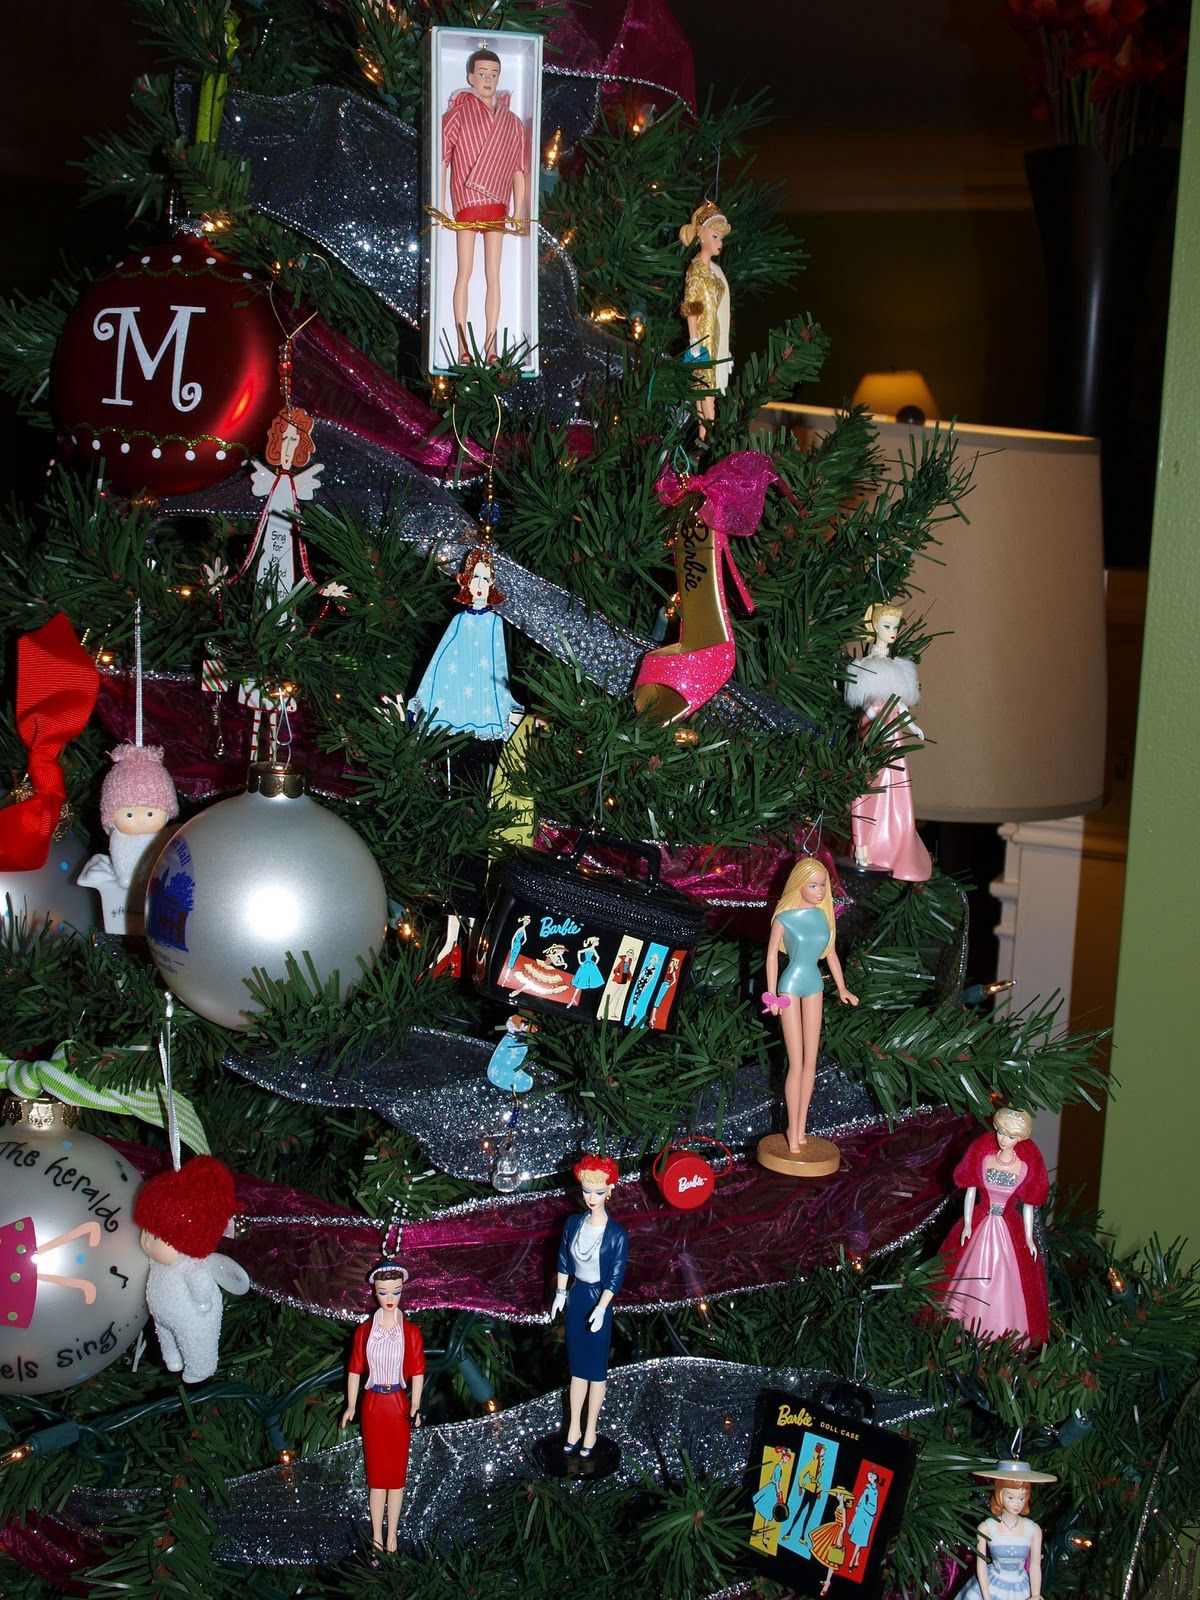 Barbie Christmas Tree - The Mathews Family Happenings Christmas 2010